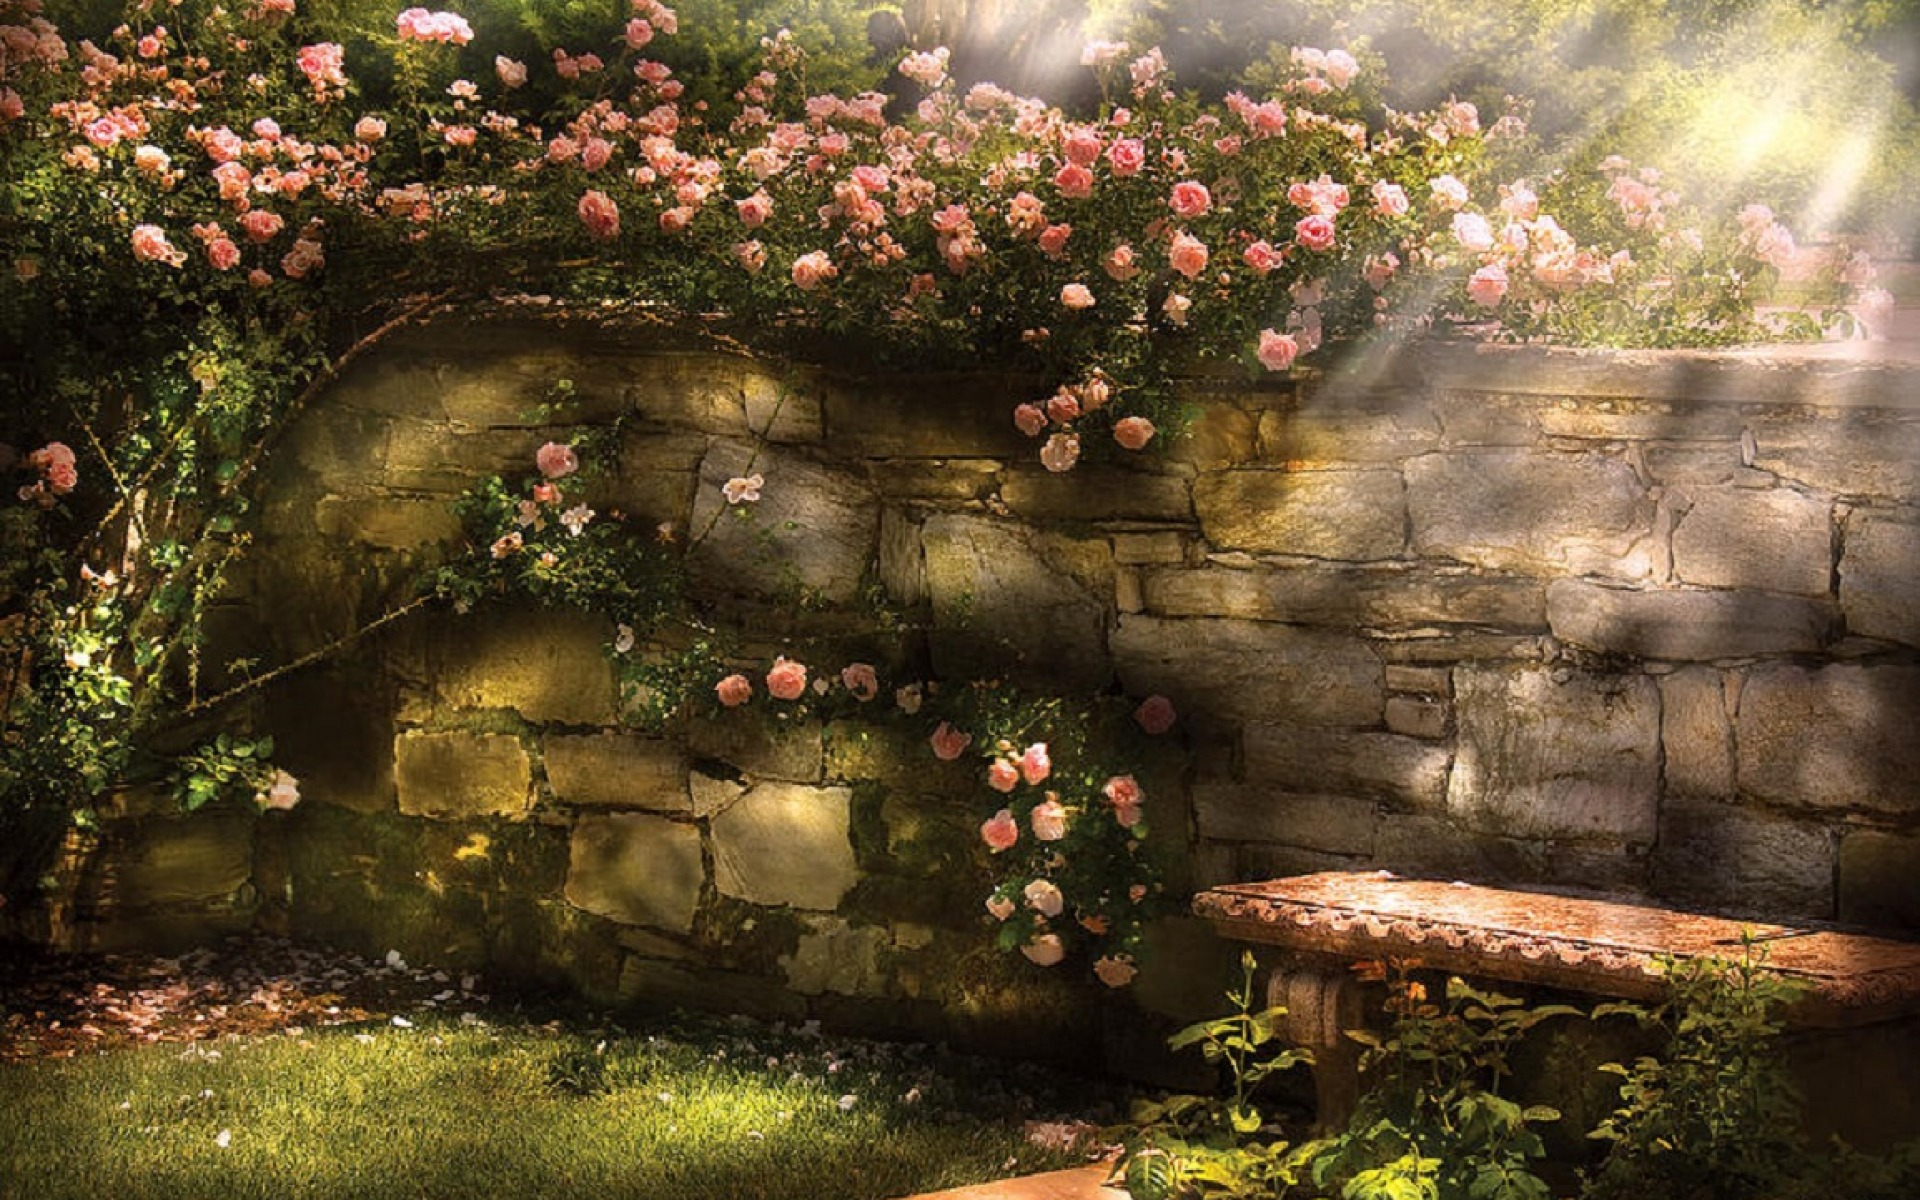 Anime Goth Girl Wallpaper Climbing Rose Wall Bench Sunny Wallpapers Climbing Rose